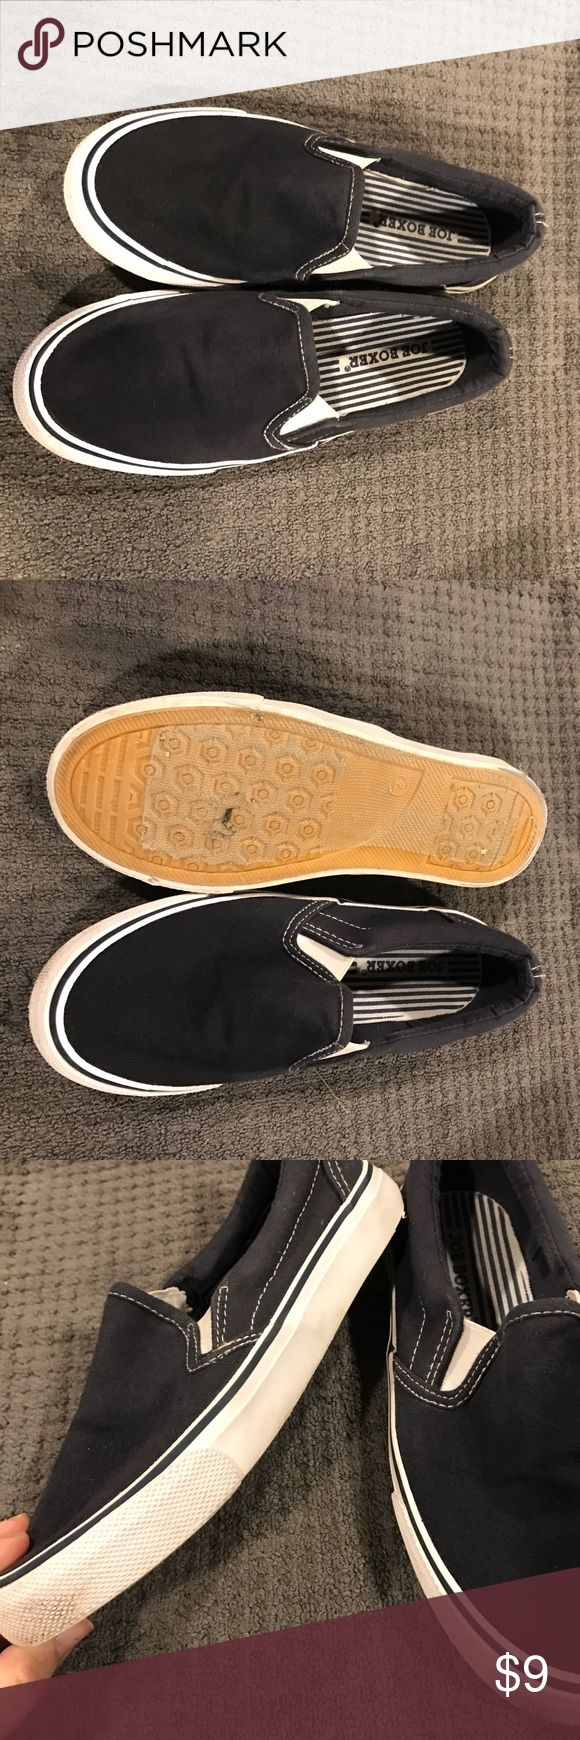 Boys Size 2 Joe Boxer Slip ons Great condition. Boys size 2 slip ons. Only worn a few times. Joe Boxer Shoes Moccasins